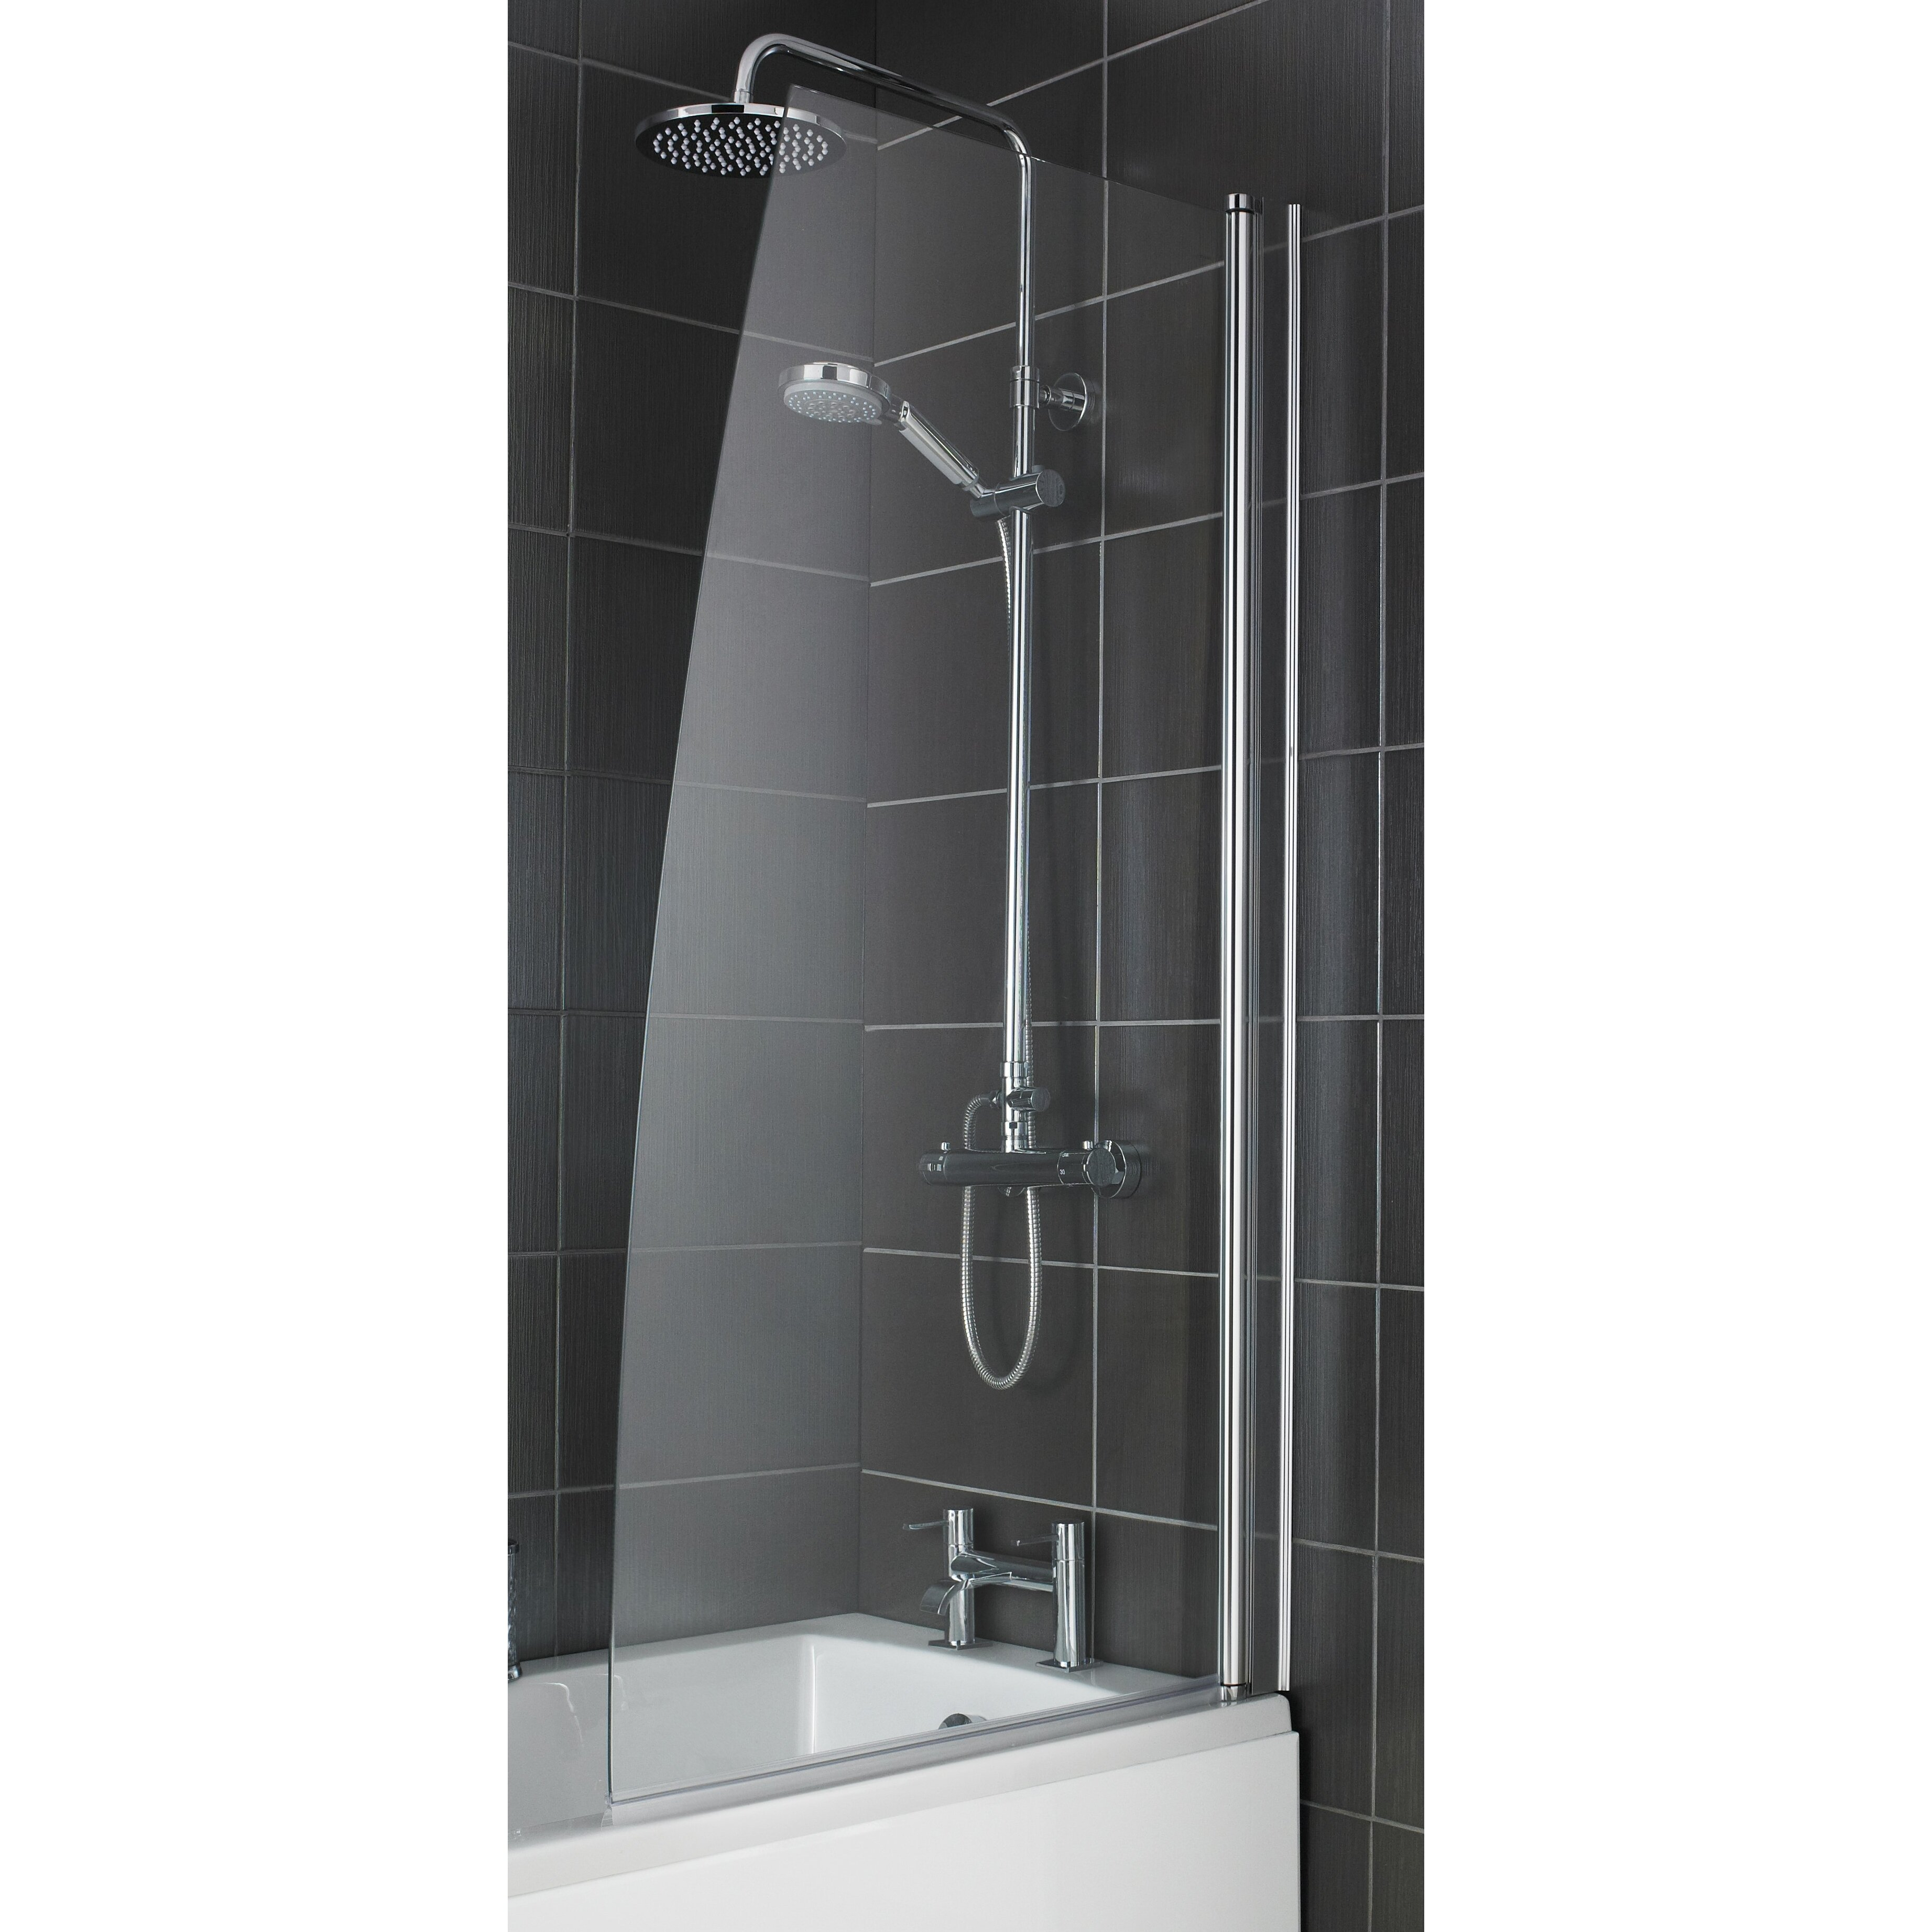 Premier 140cm x 79cm bath screen reviews wayfair uk Premiere bathroom design reviews